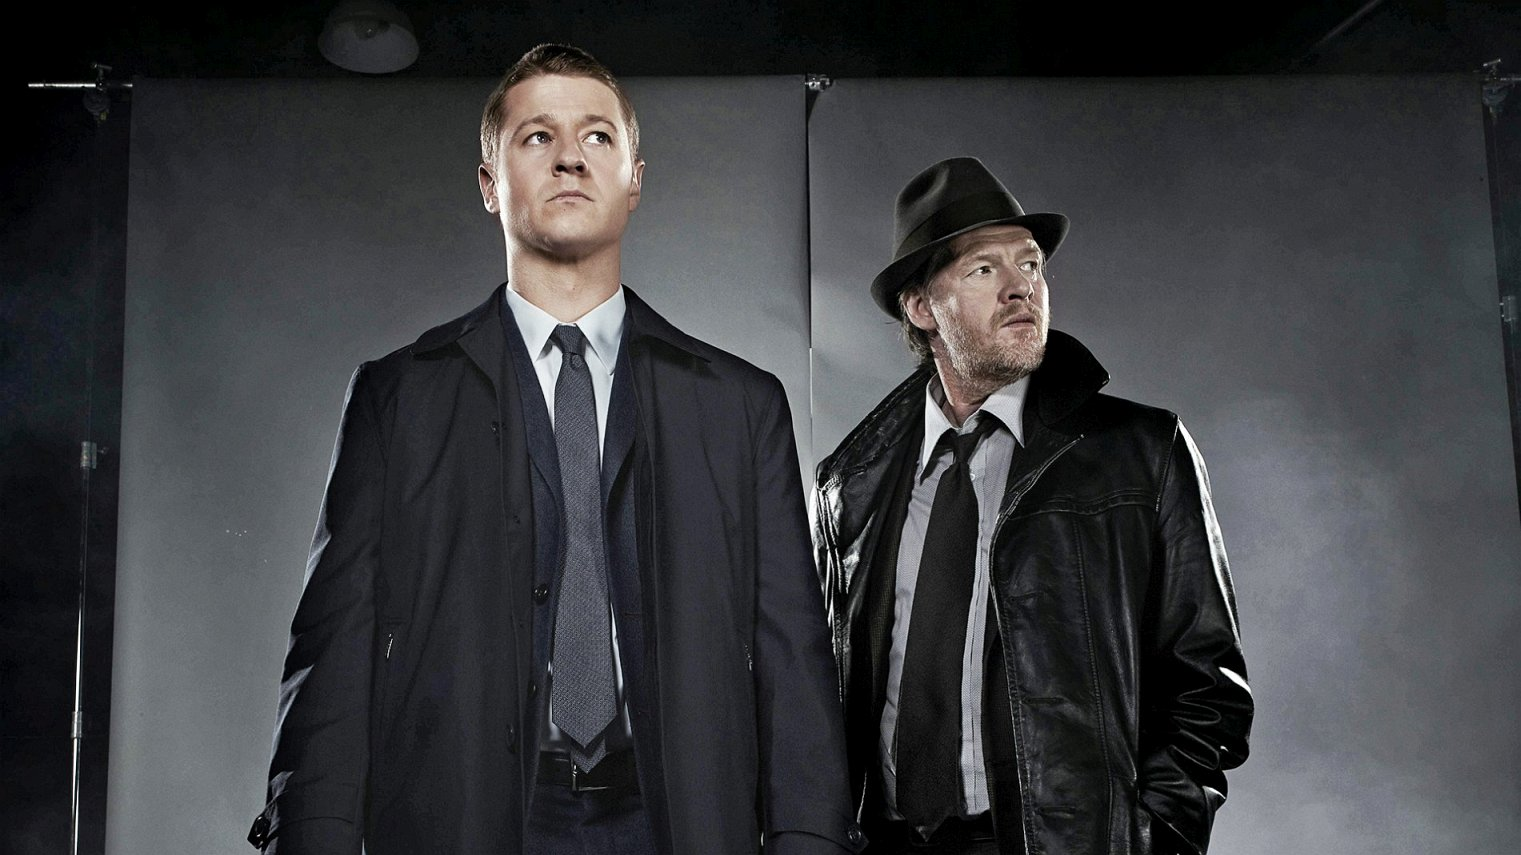 Gotham S5 episode 8 watch online